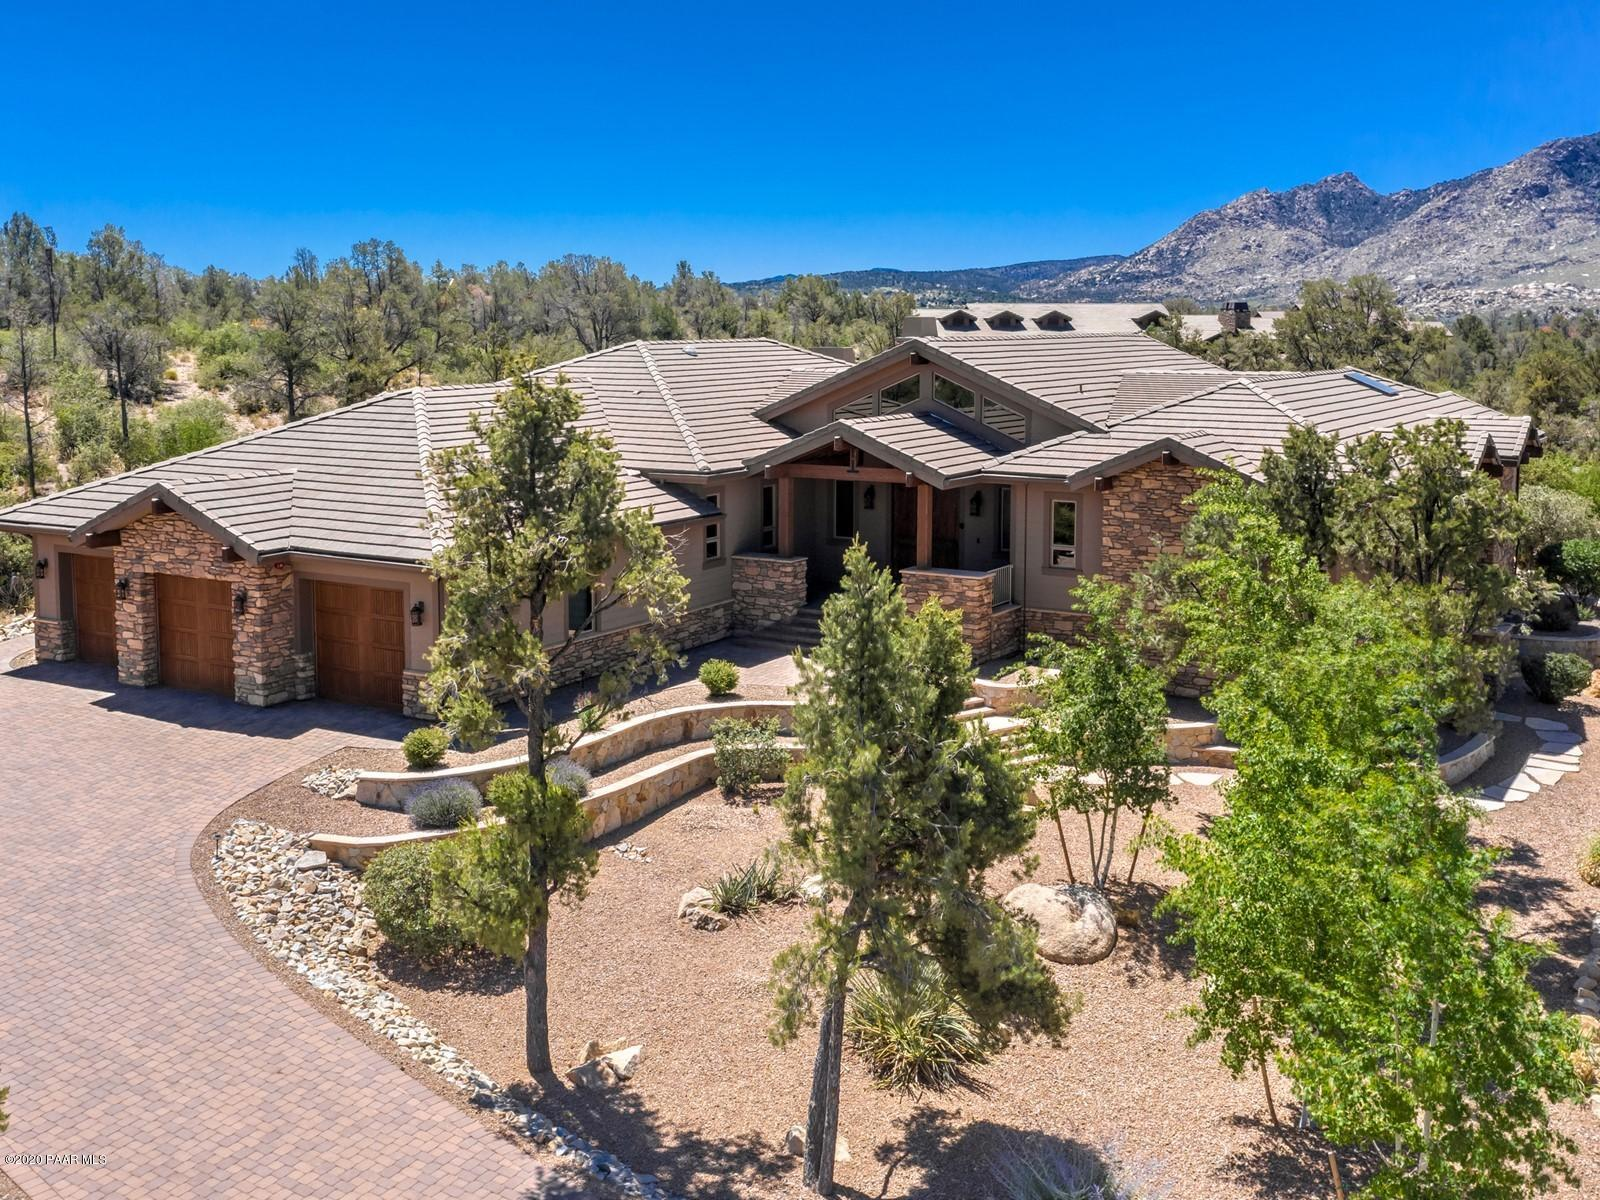 Photo of 9570 American Ranch, Prescott, AZ 86305